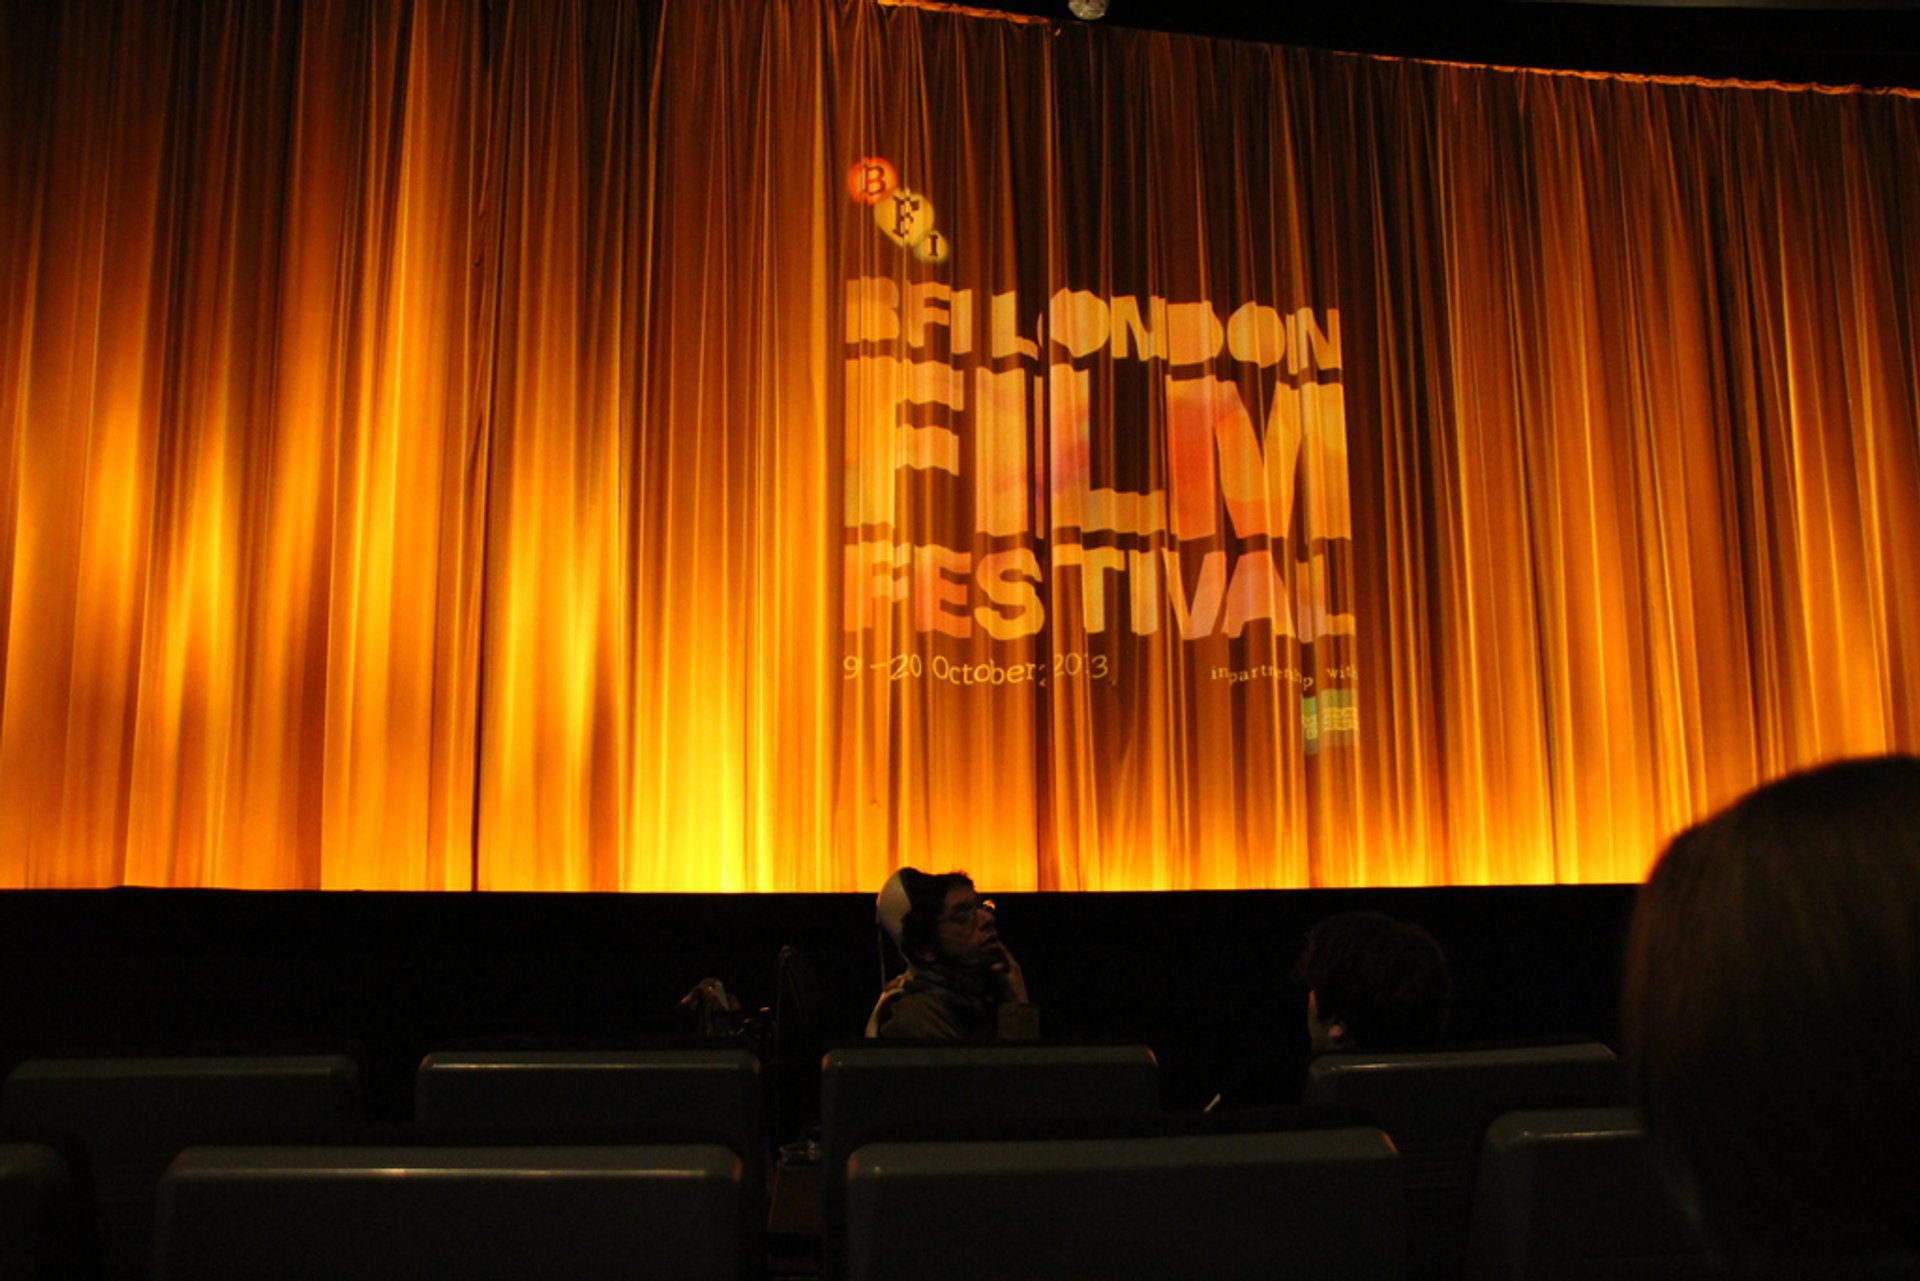 BFI London Film Festival in London 2019 - Best Time